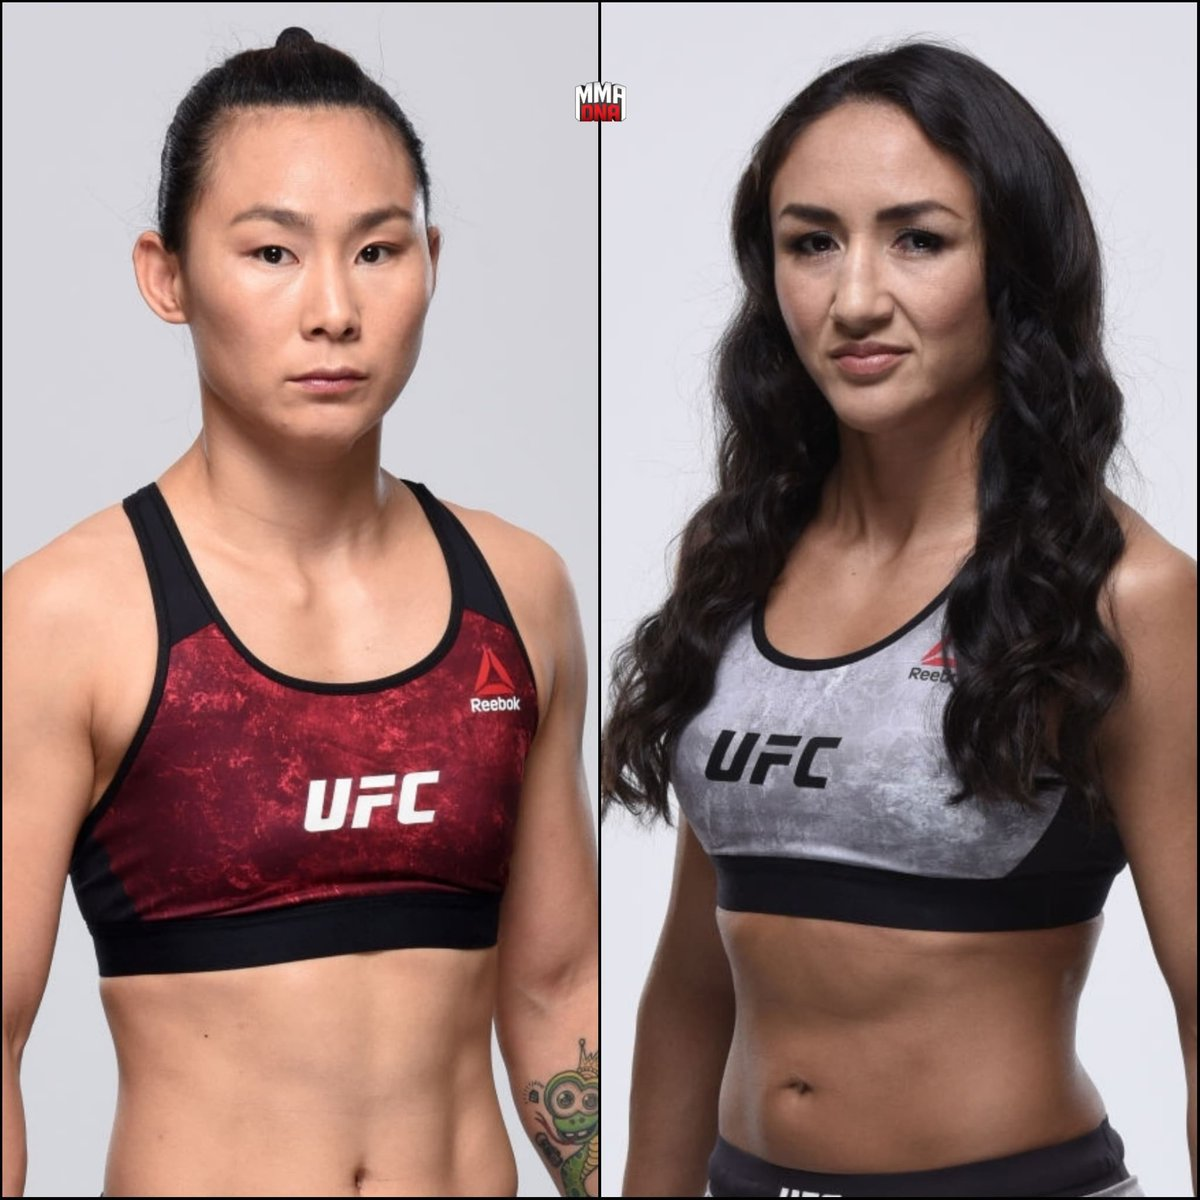 🚨🚨BREAKING🚨🚨  A very important fight in the UFC Women's Strawweight division is targeted for May 22nd.   #3 ranked Yan Xiaonan takes on former champion and #4 ranked Carla Esparza.  #UFC #MMA #WMMA